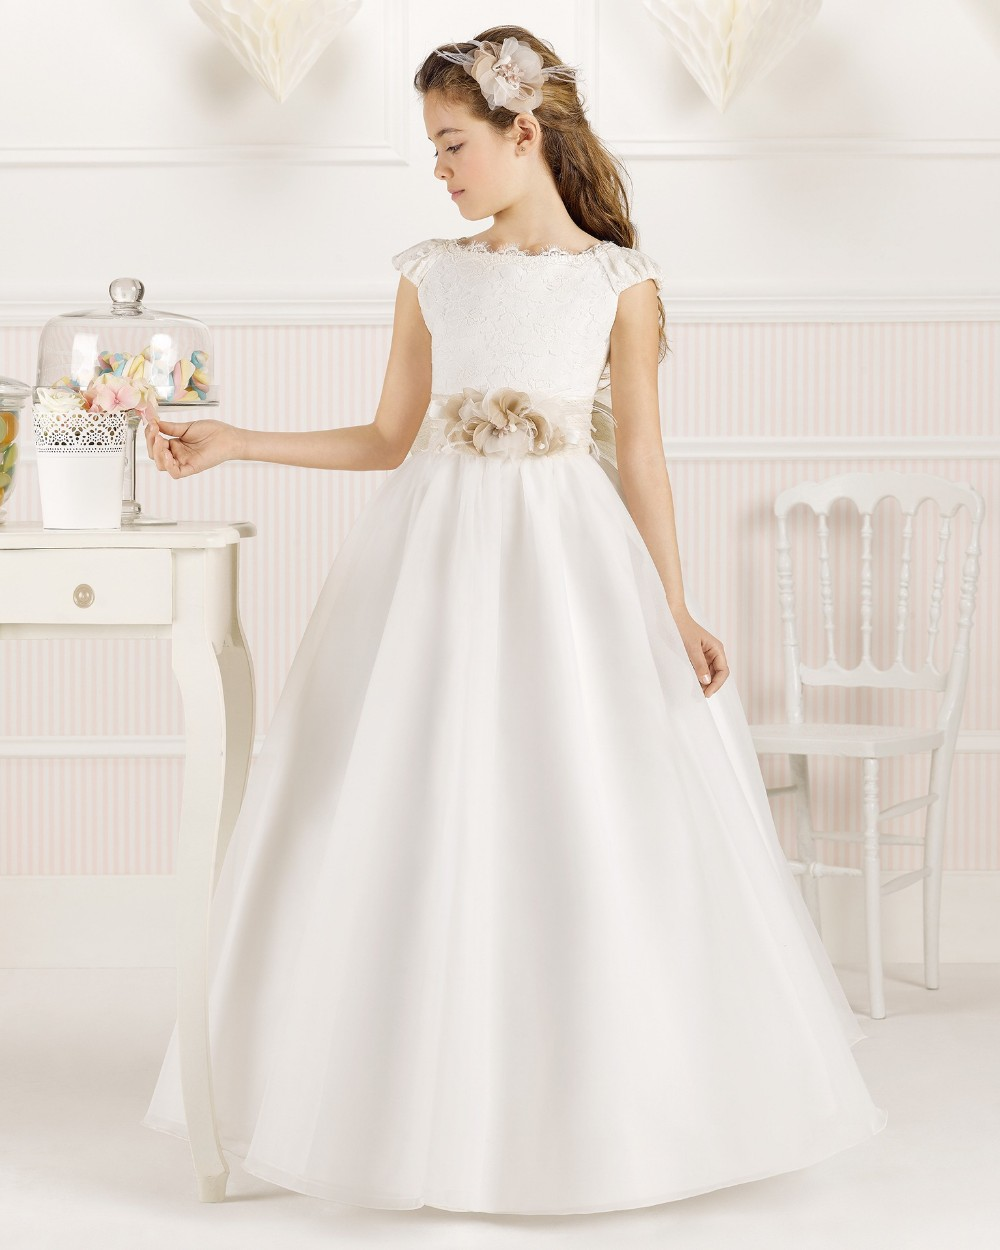 2019 A Line Scoop Flower Girl Dresses Sleeveless Floor Length Embroidery Cap Sleeves Satin first communion